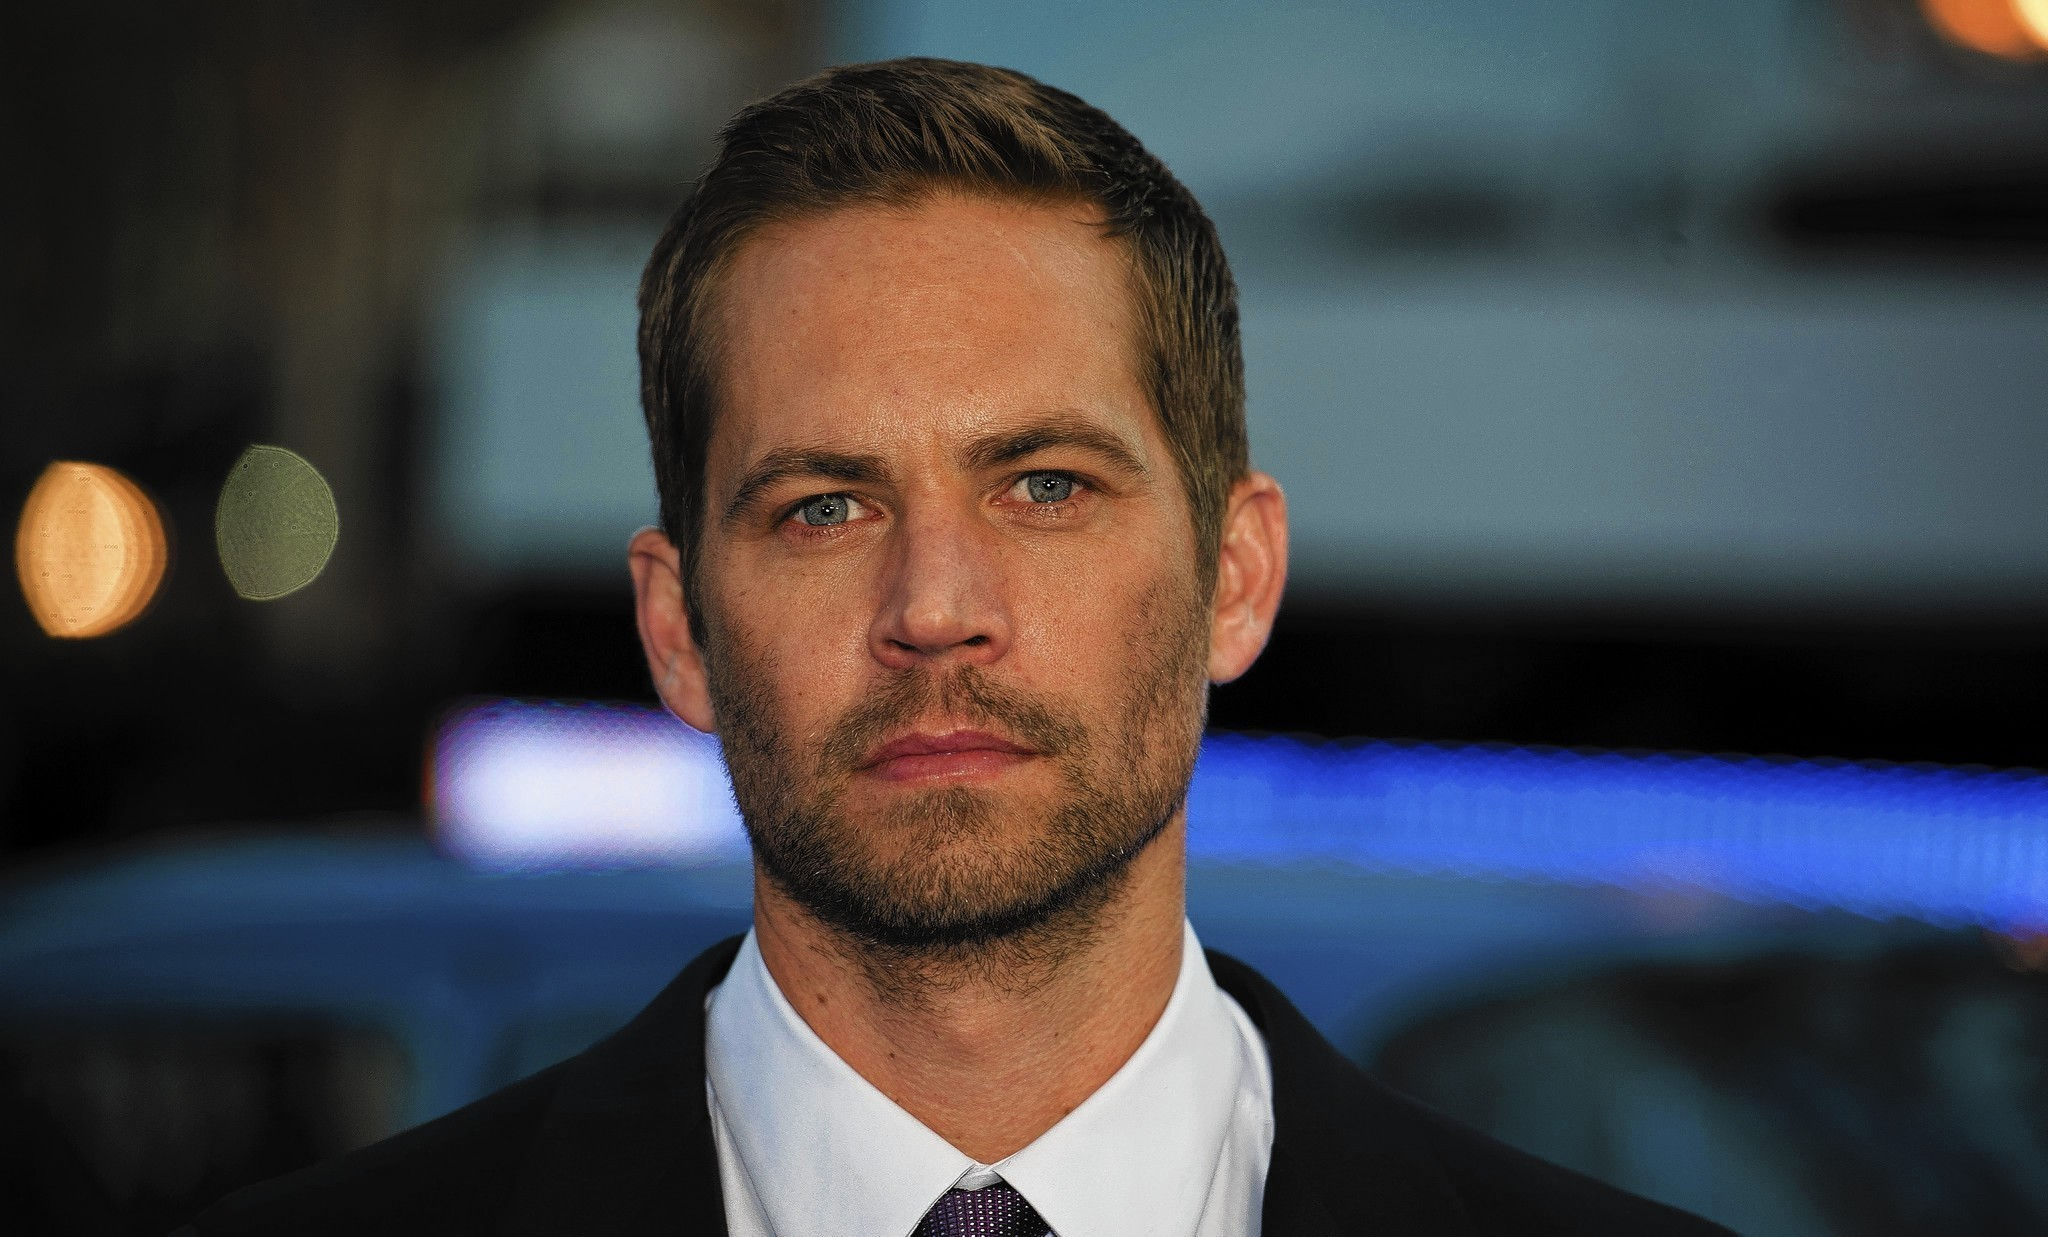 Paul Walkers Family Sues Actors Associate For Stealing Several Cars 24 Hours After His Death 96773 on car storage facilities los angeles